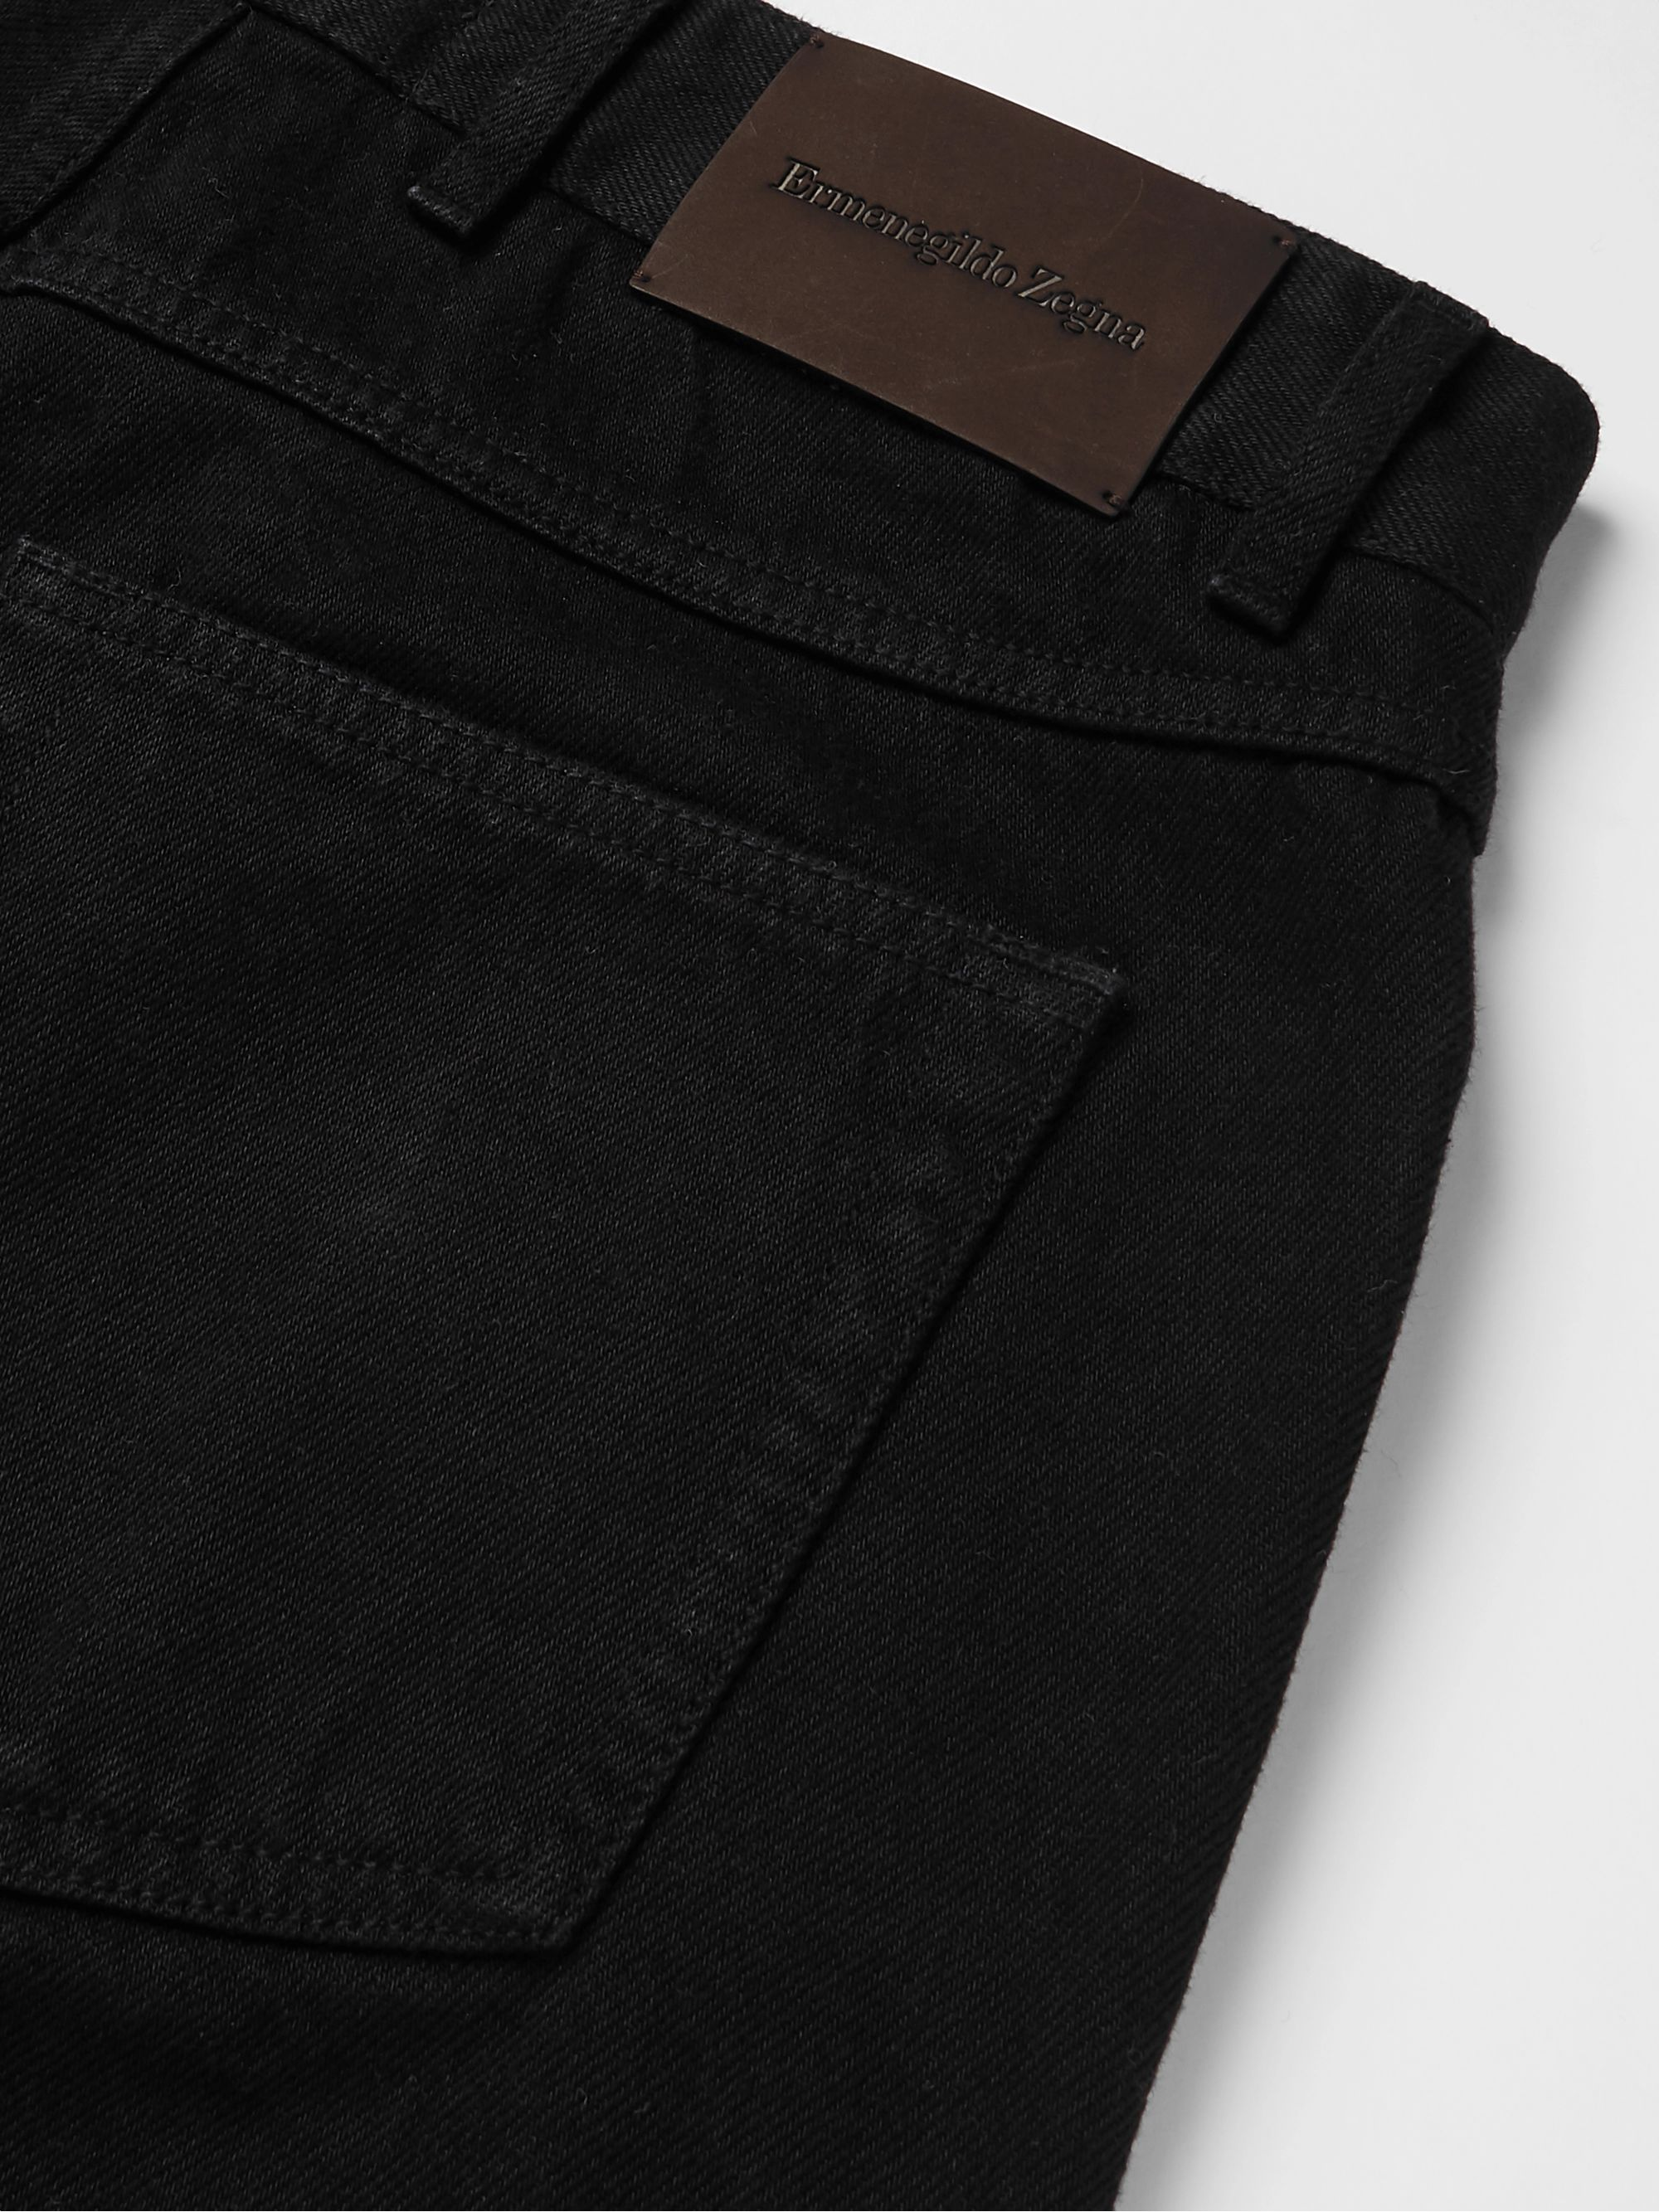 Ermenegildo Zegna Slim-Fit Denim Jeans